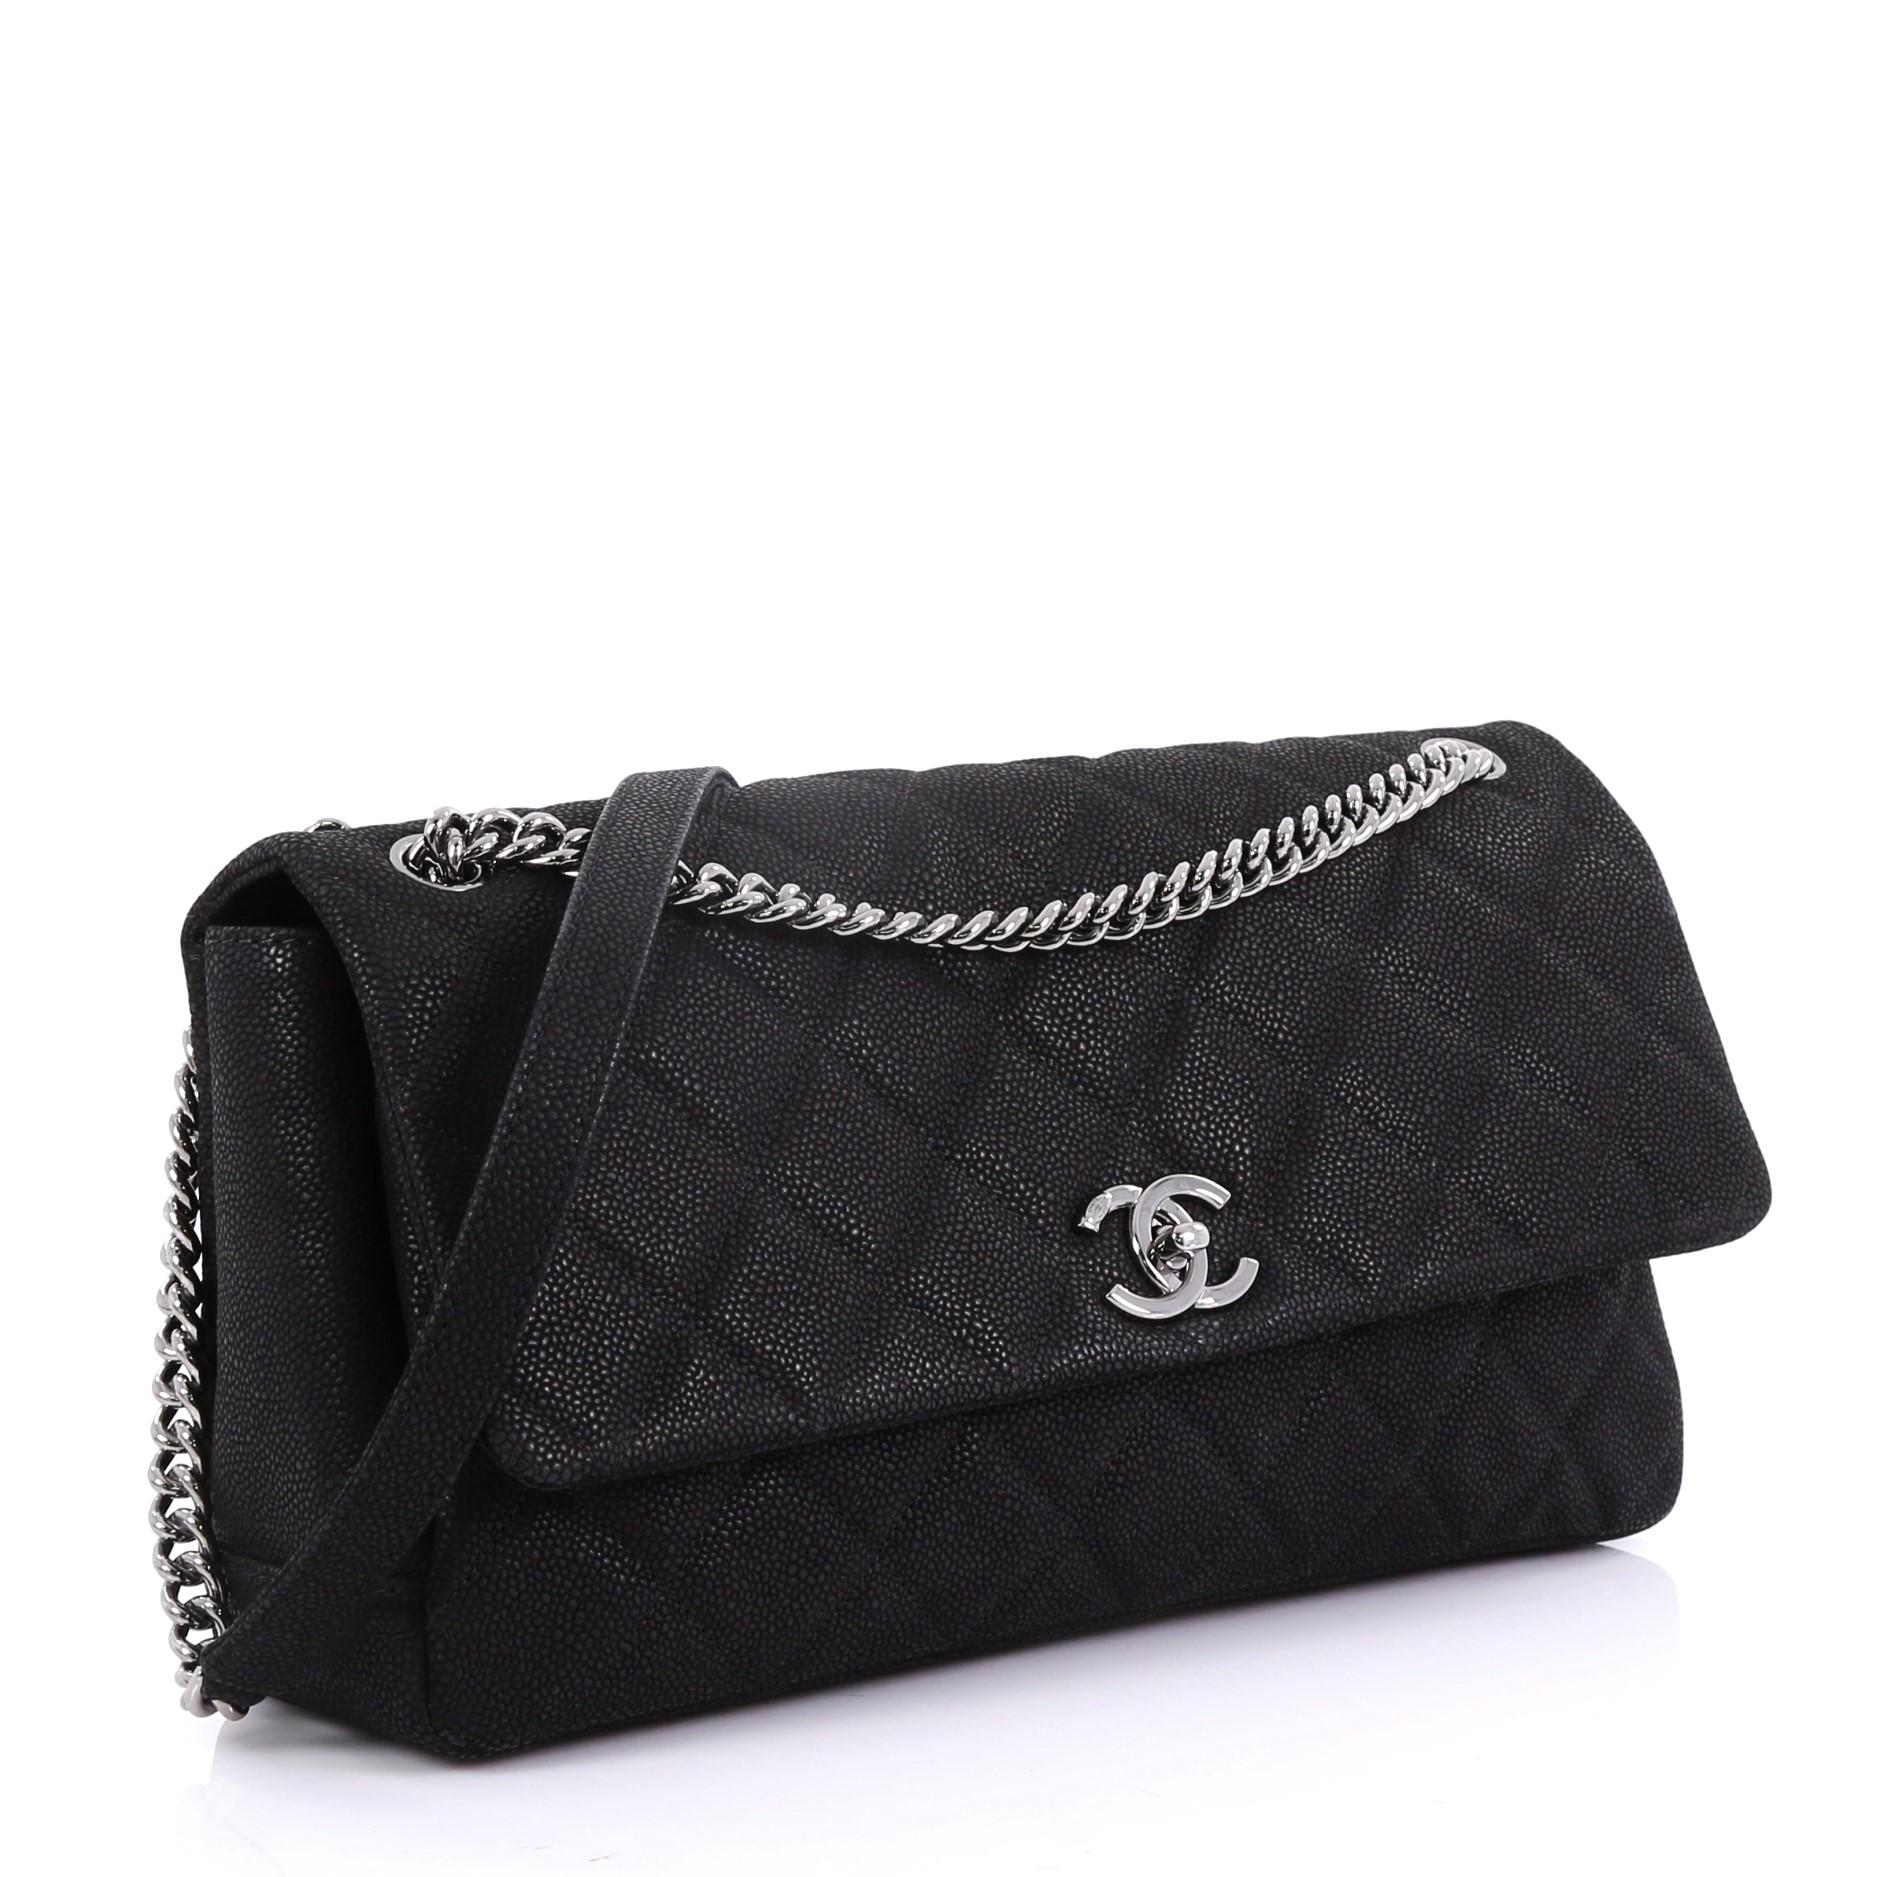 3b4e4c11e570cb Chanel Lady Pearly Flap Bag Quilted Matte Caviar Medium at 1stdibs